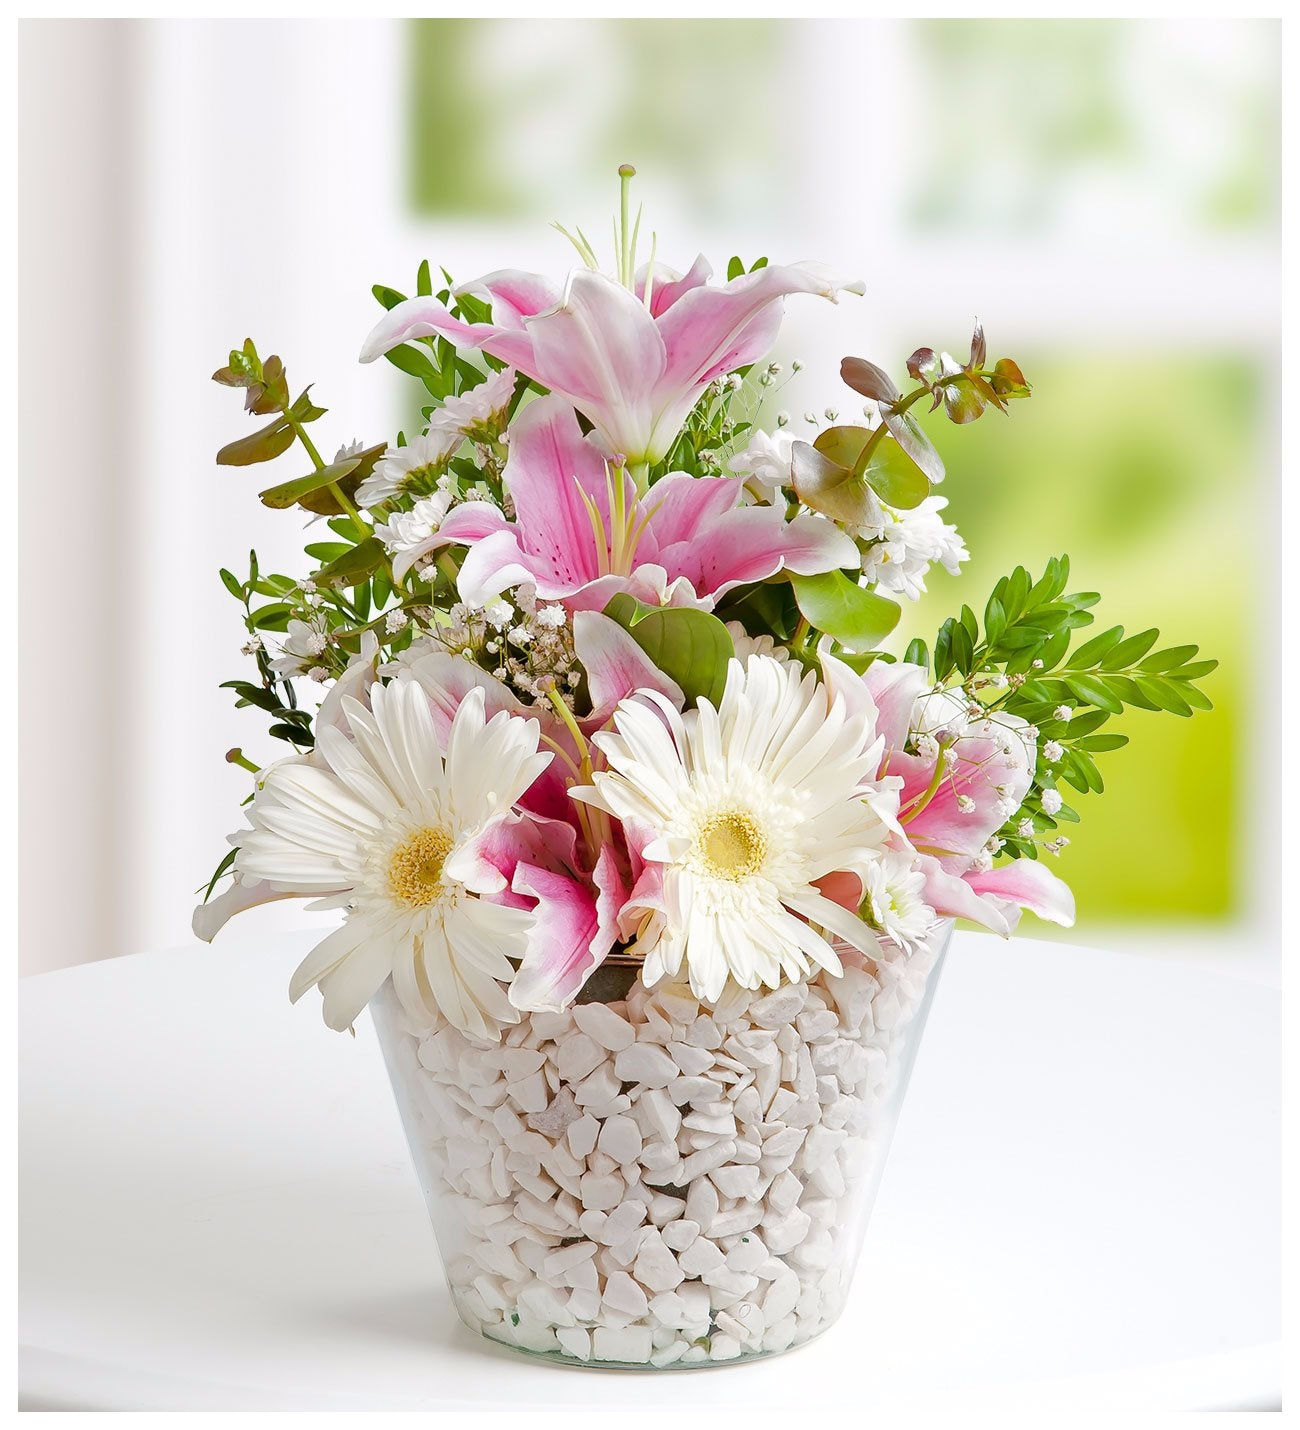 pink lilies and white